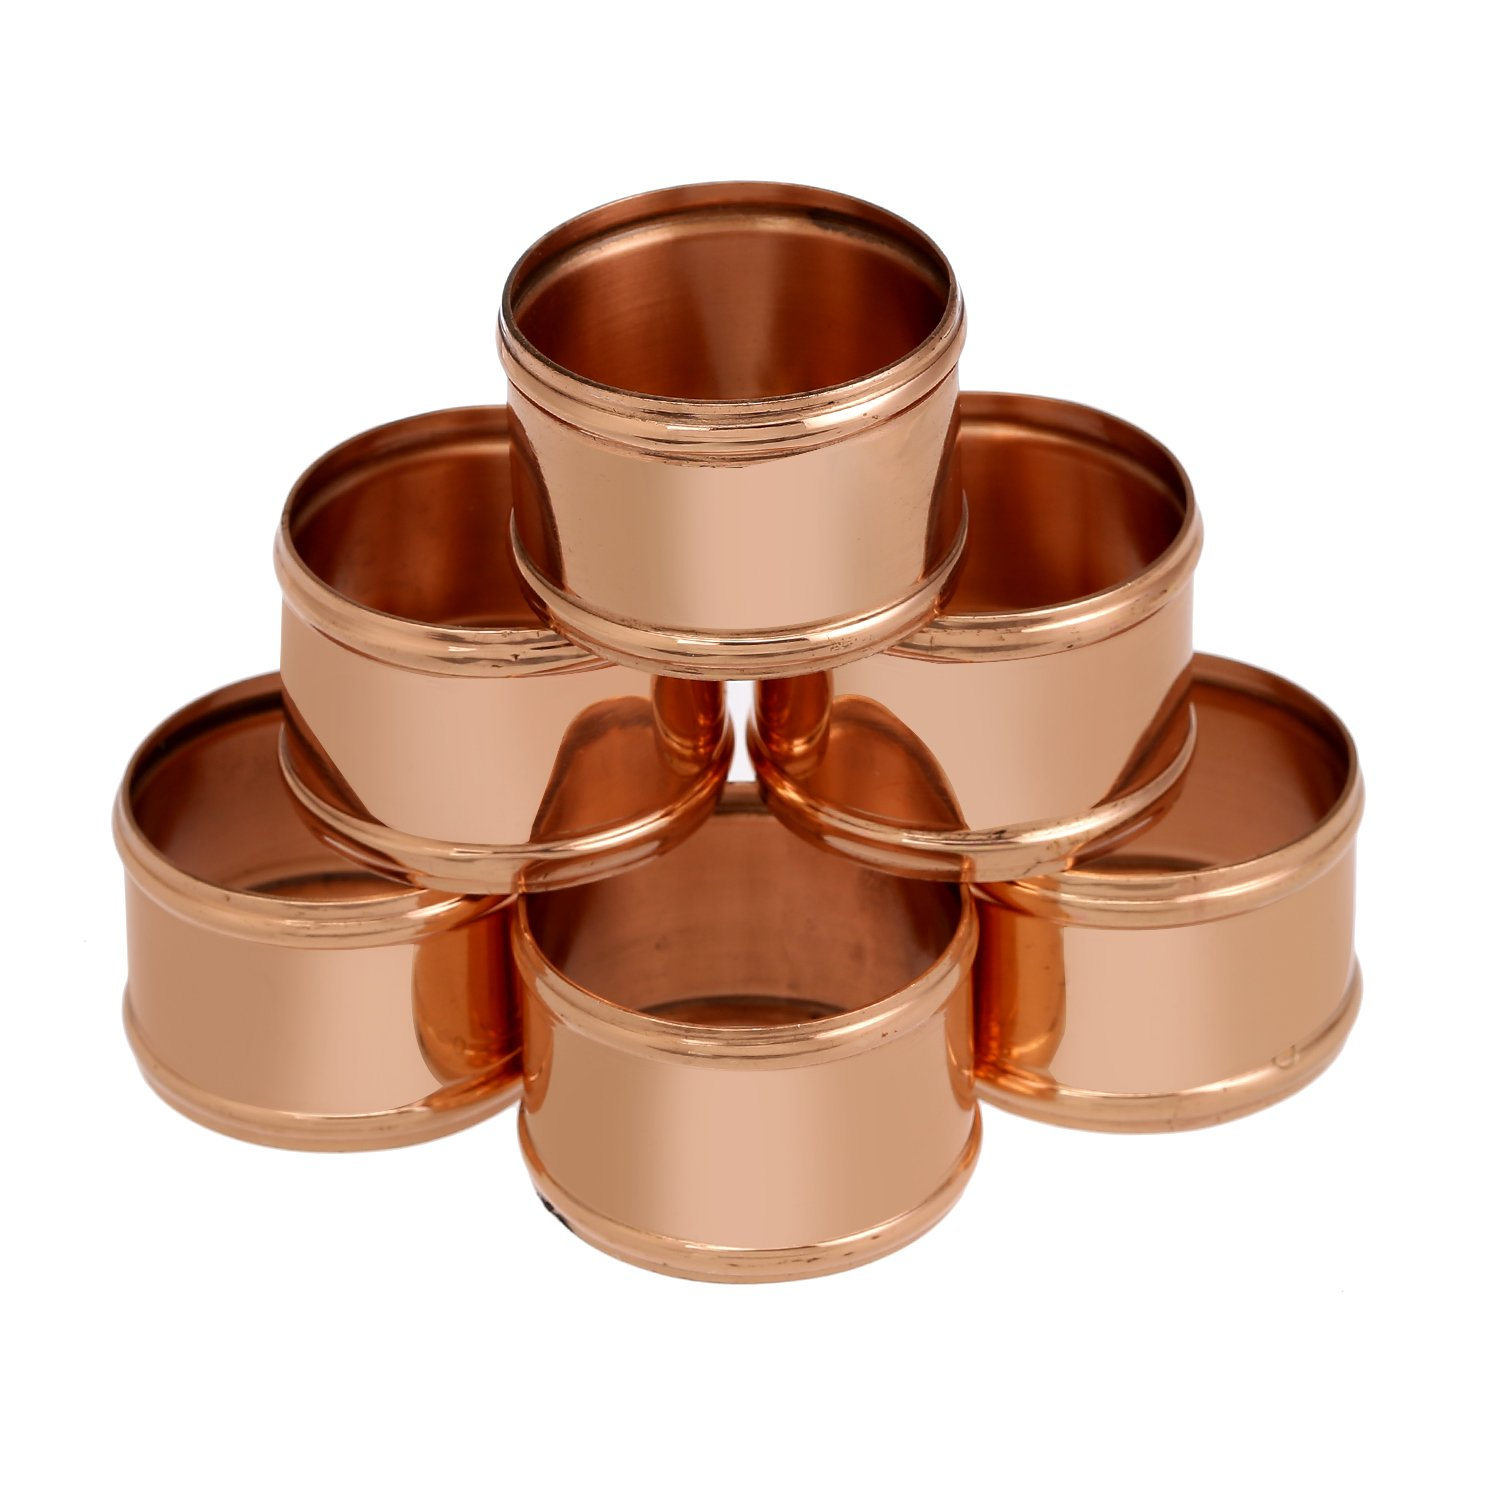 ShalinIndia Copper Napkin Ring Holder for Weddings,Dinners, Parties or Everyday Use, Set of 6,Light Weight 35 Grams,Diameter-1.75 Inch